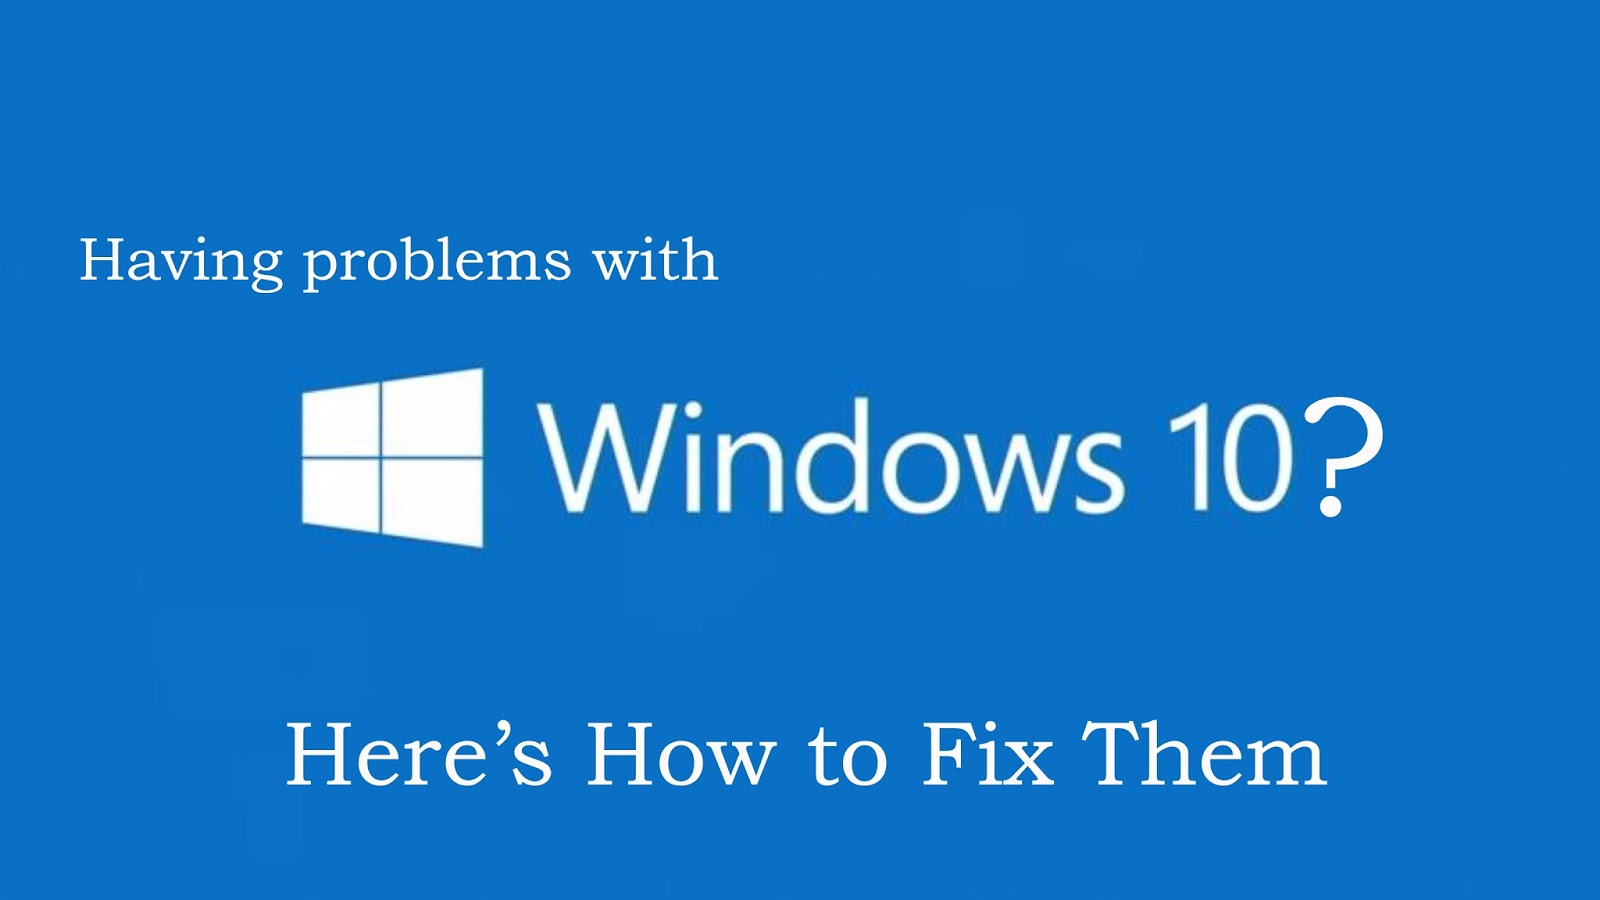 Number For Windows 10 Support 1-888-318-6213